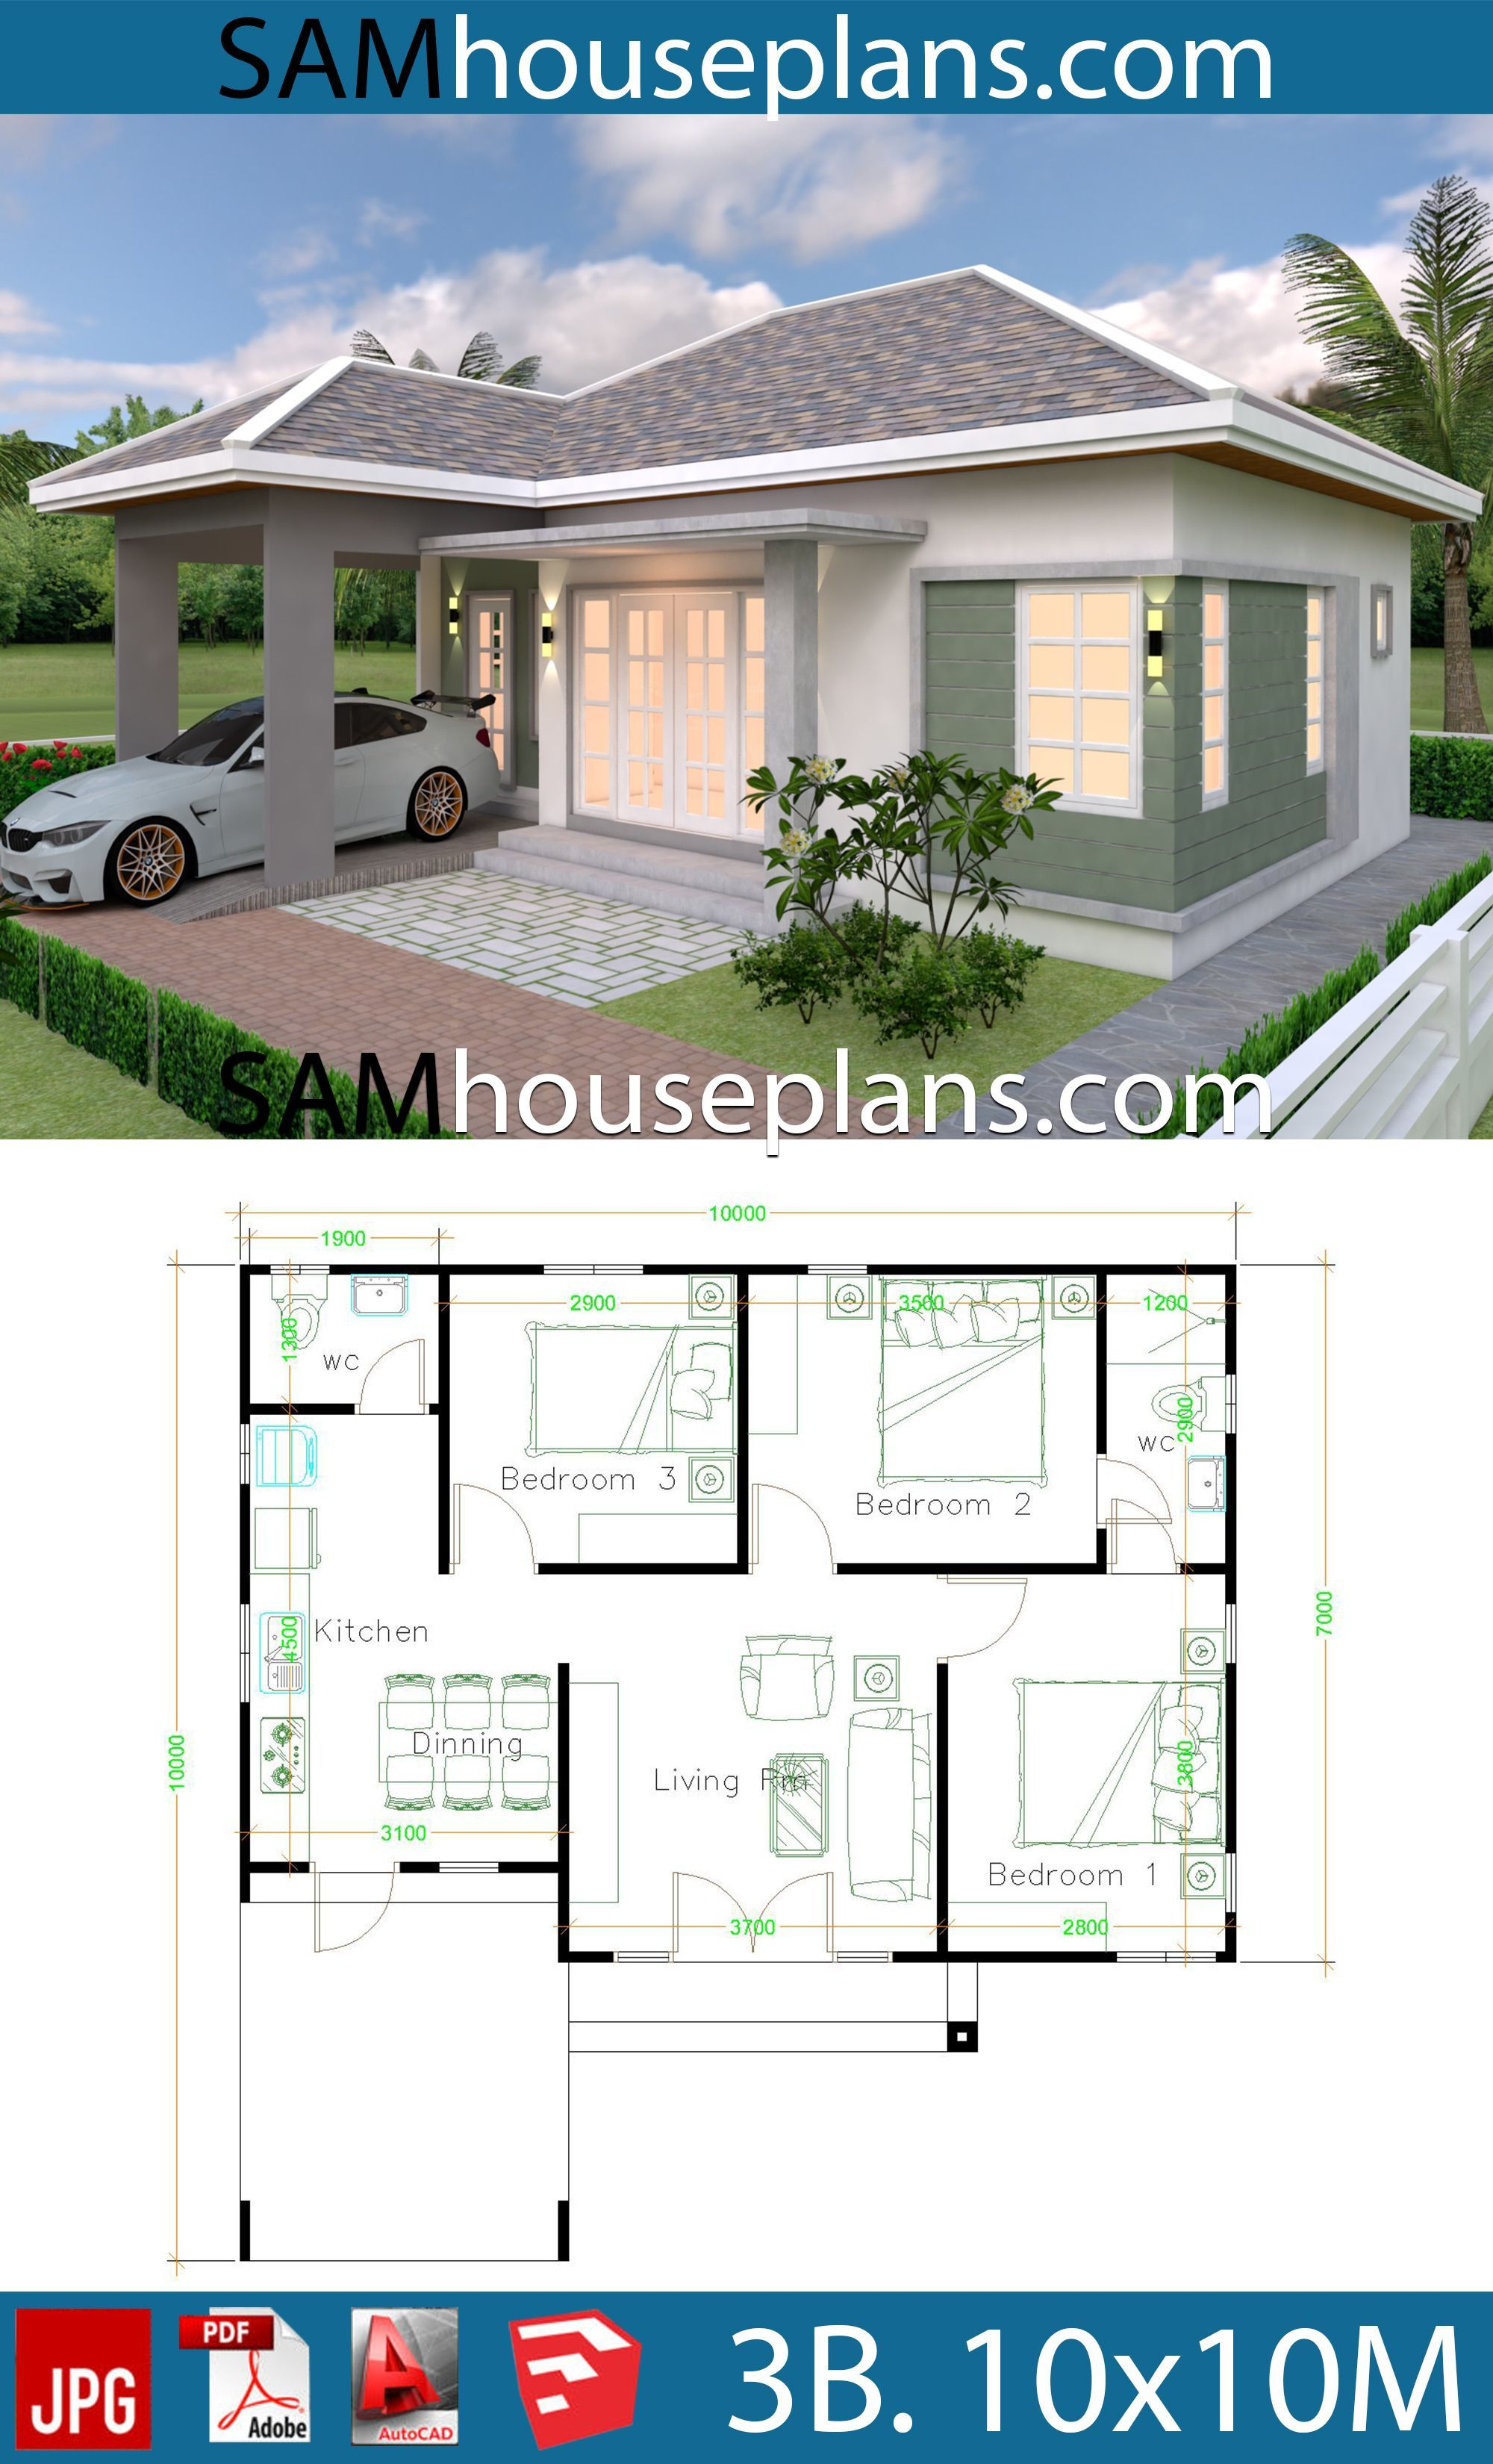 House Building Plans Free Download 2021 Architectural House Plans Sims House Plans Small House Design Plans